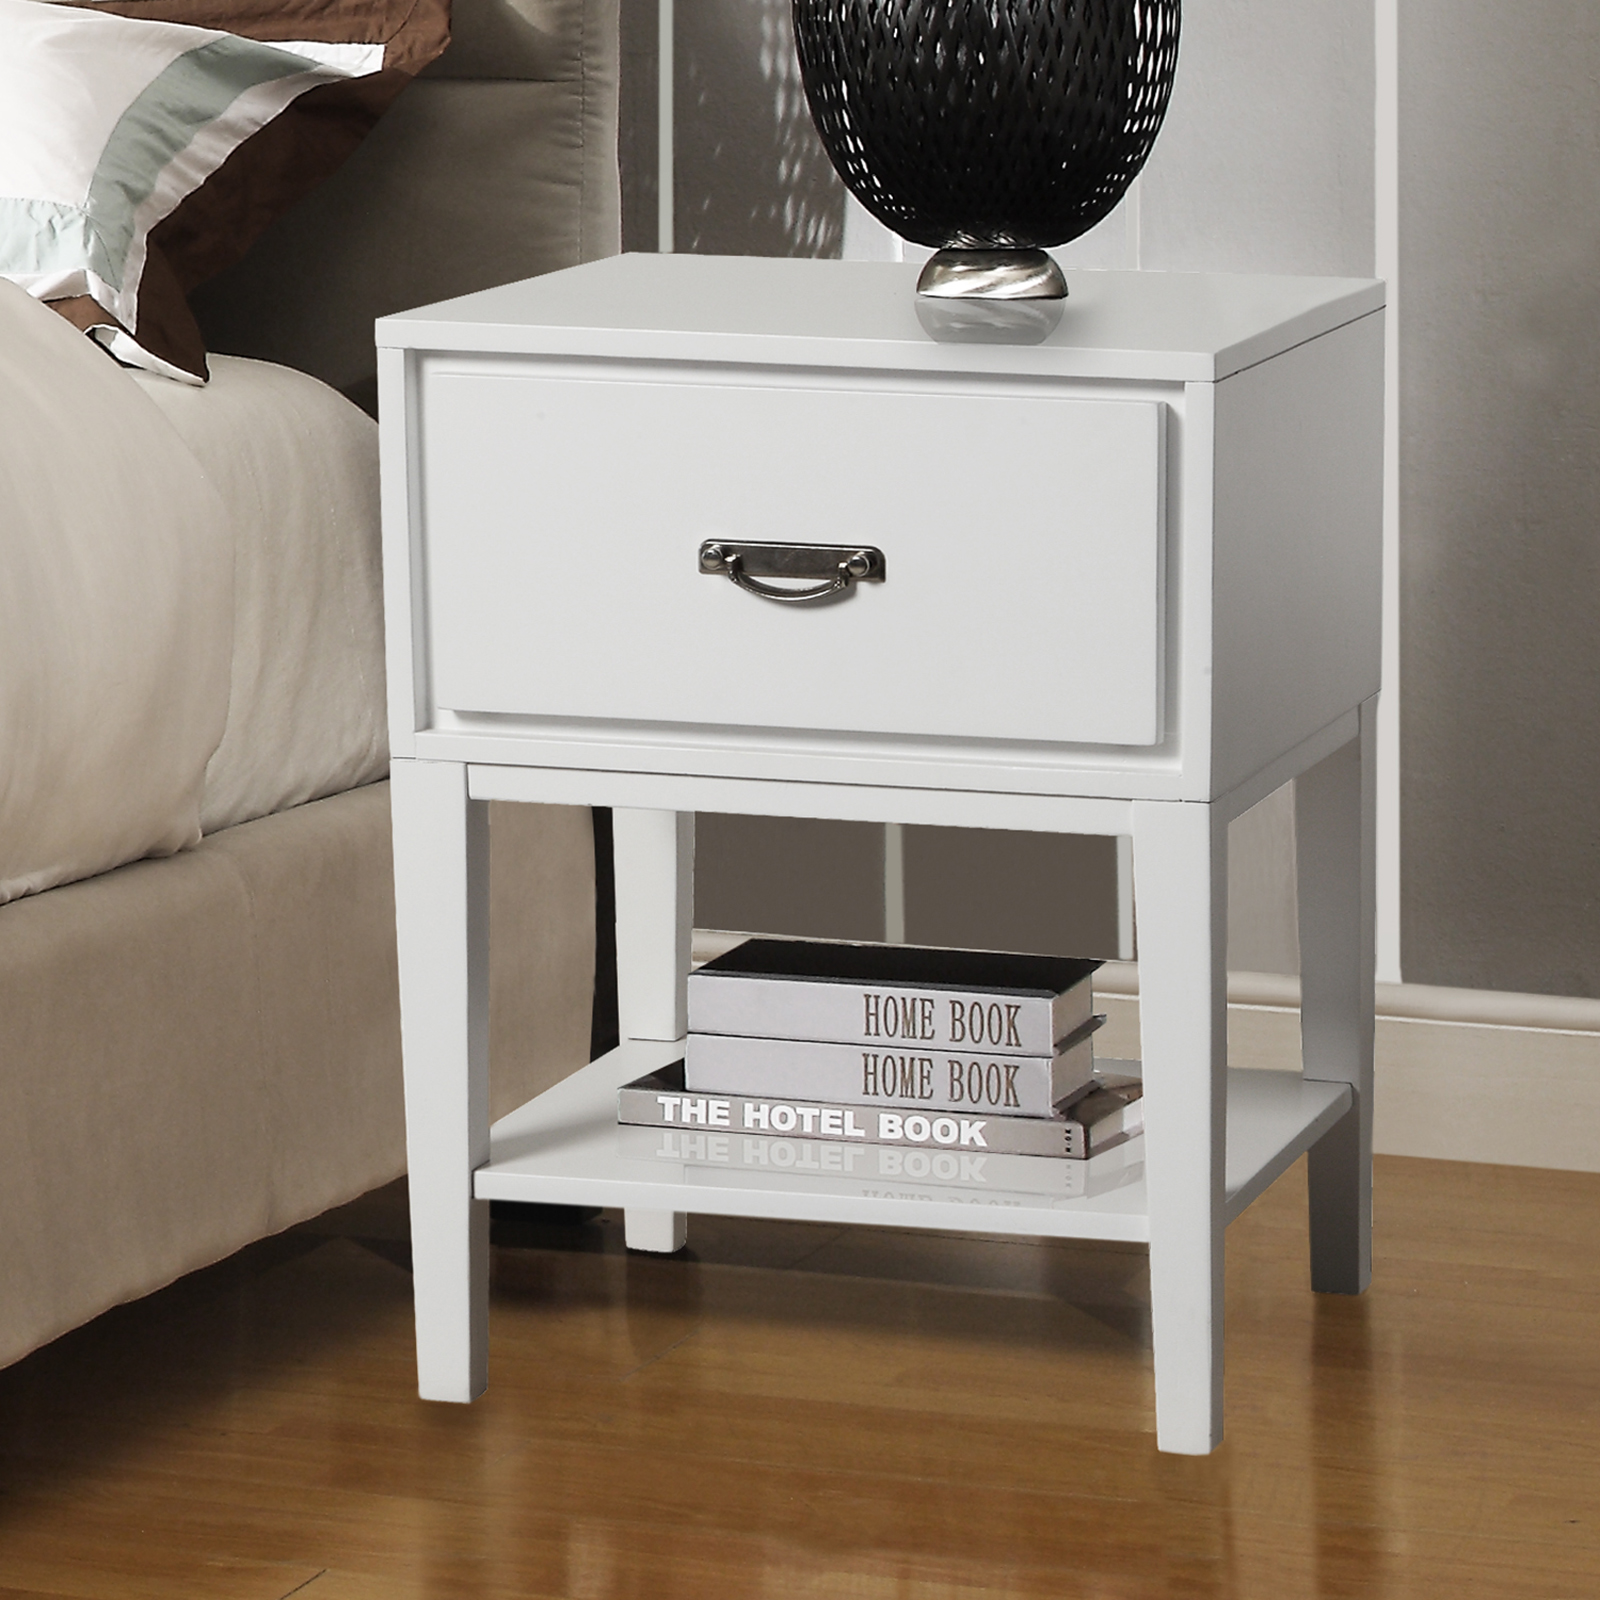 Oxford Creek Sienna Rectangle White Accent Table Nightstand Medium Finish PartNumber: 00855128000P KsnValue: 7940987 MfgPartNumber: 29564A161W(3A)